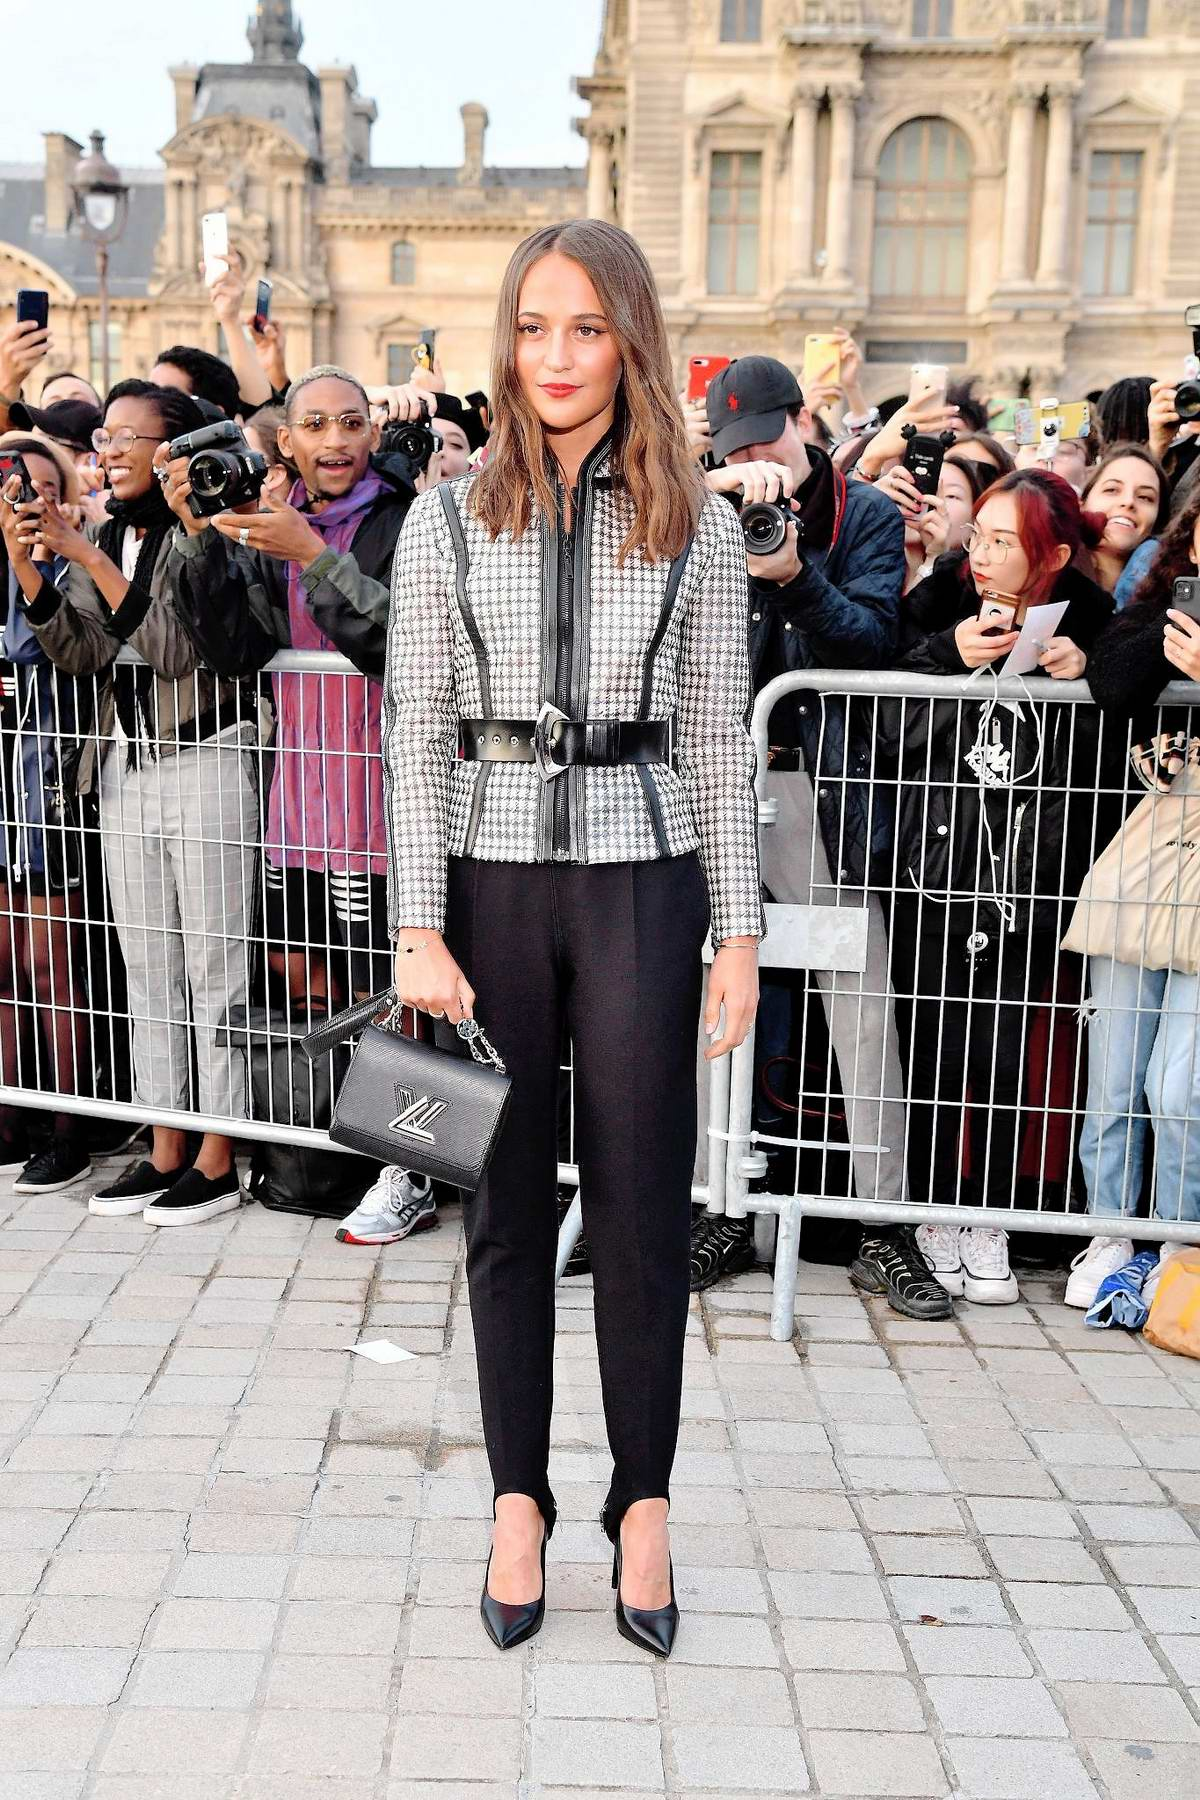 Alicia Vikander attends the Louis Vuitton Womenswear SS 2020 show during Paris Fashion Week in Paris, France